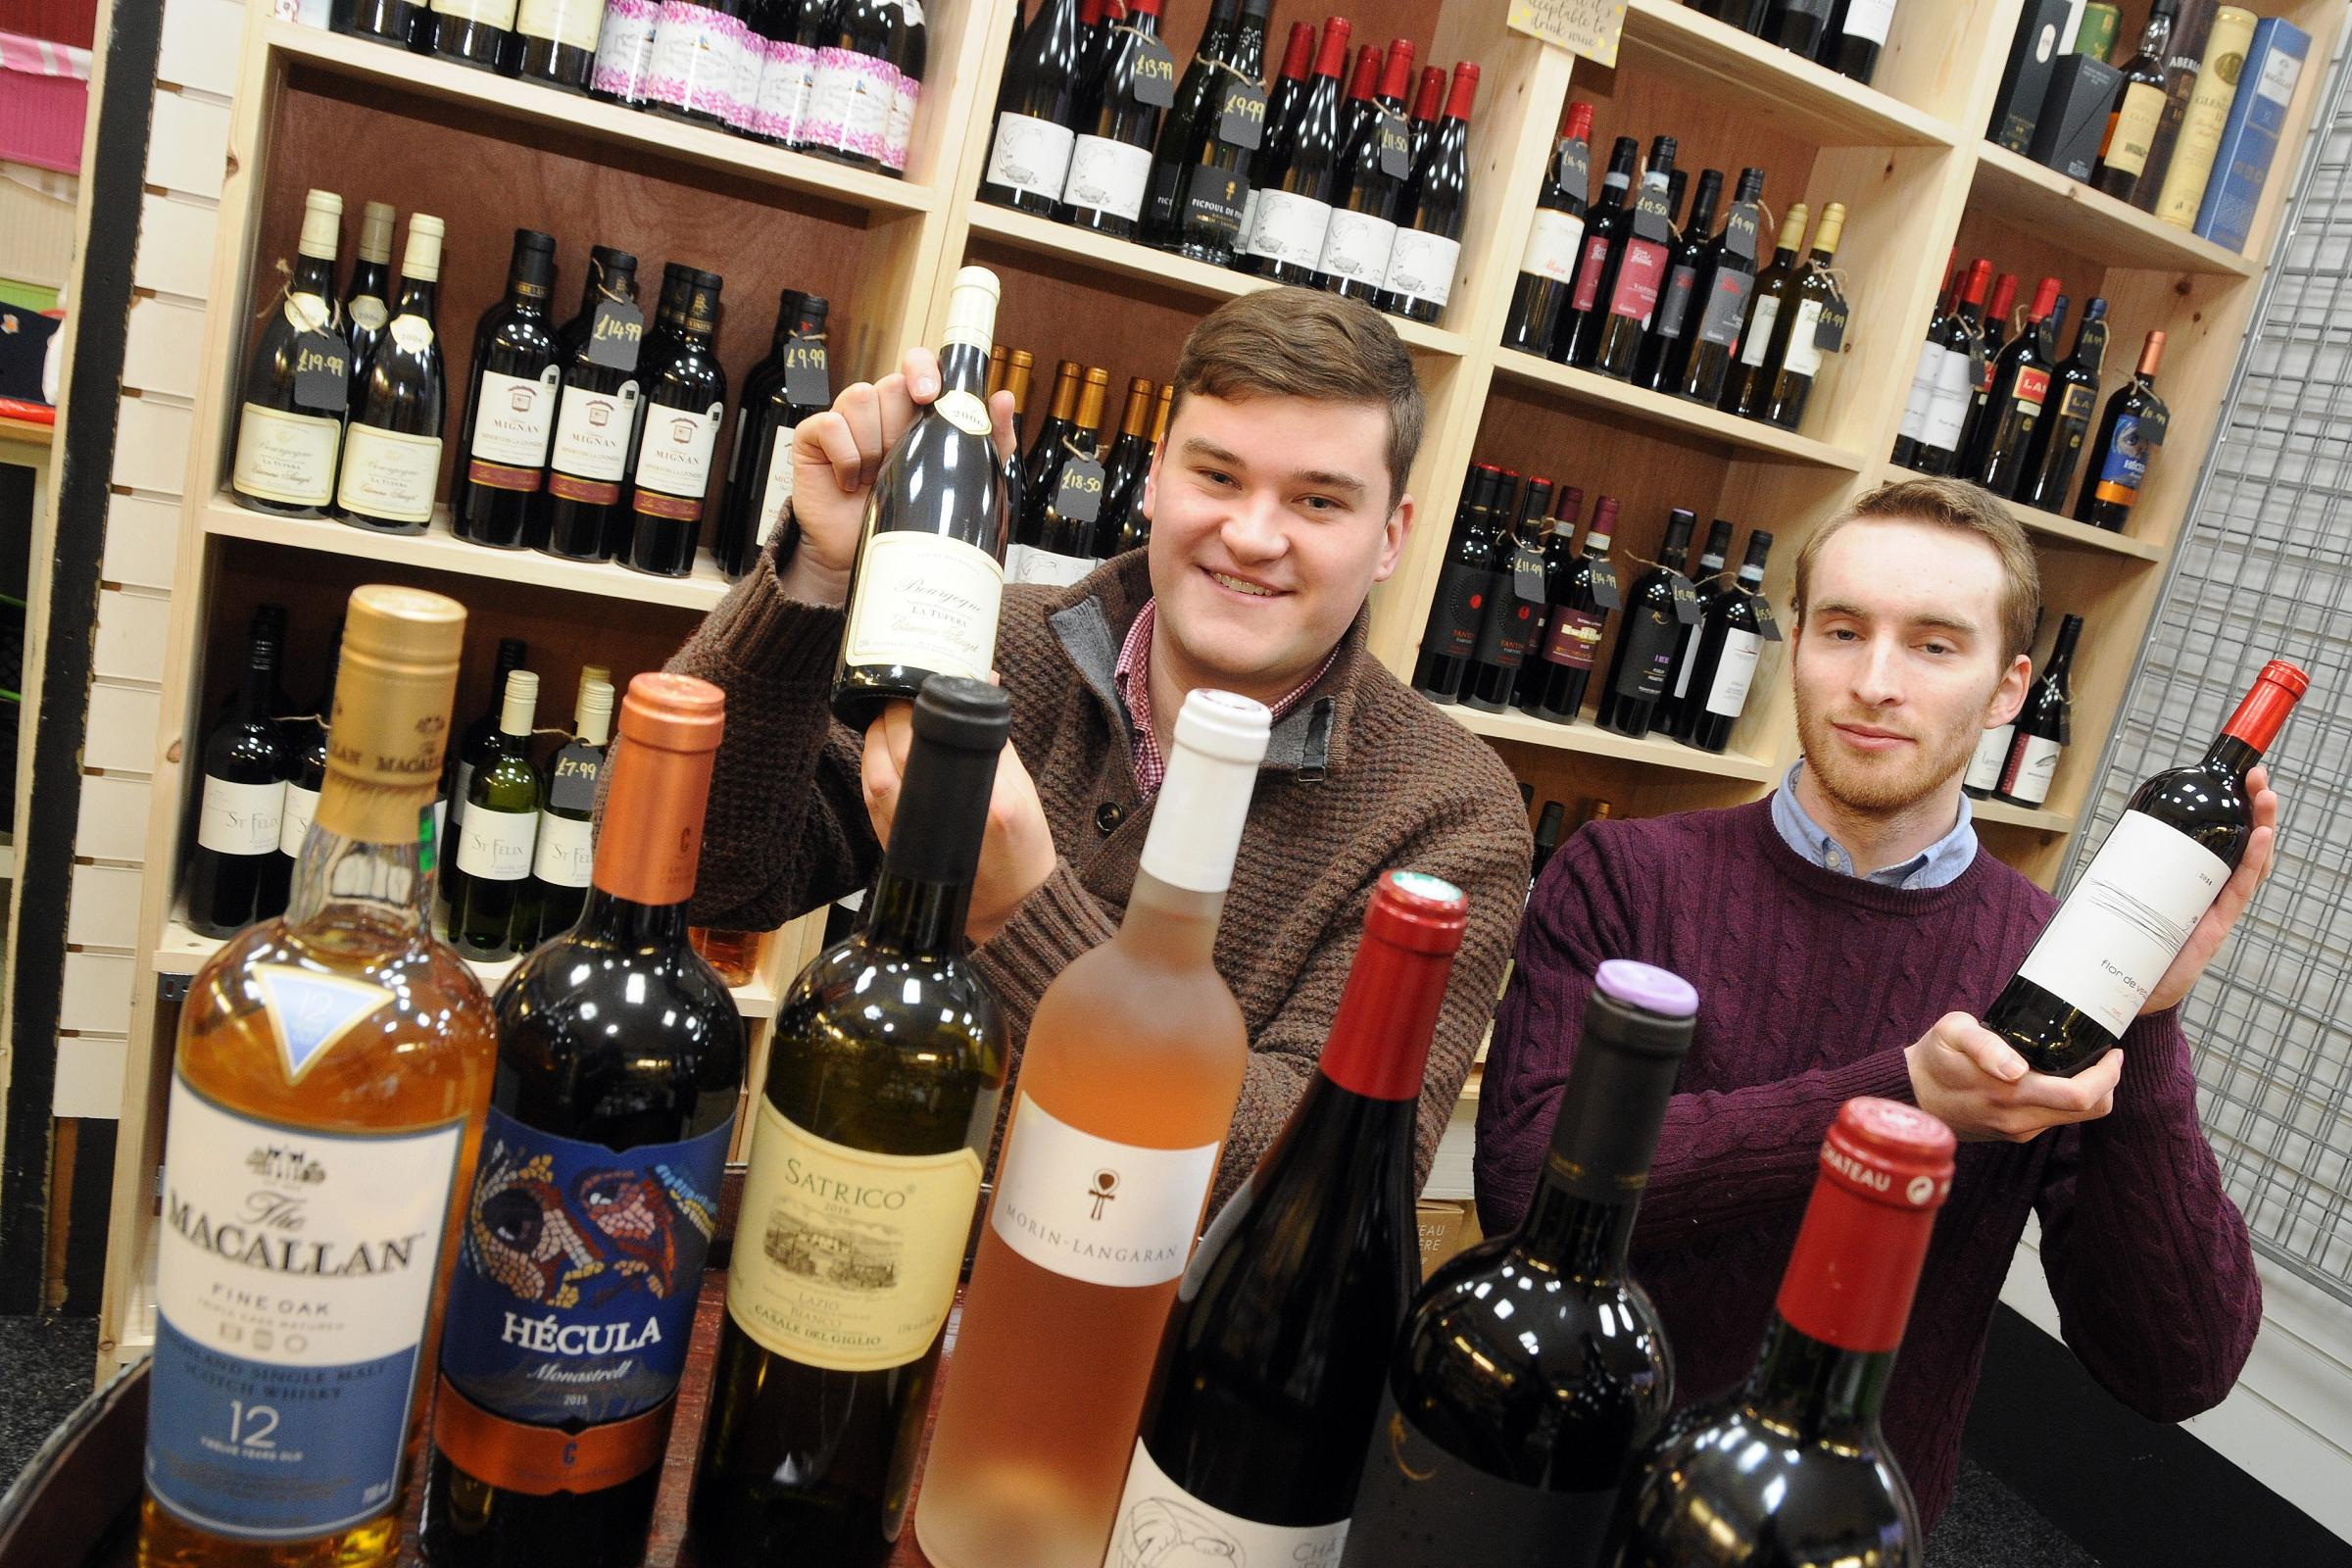 Wine merchant is open for business at Knutsford Market Hall